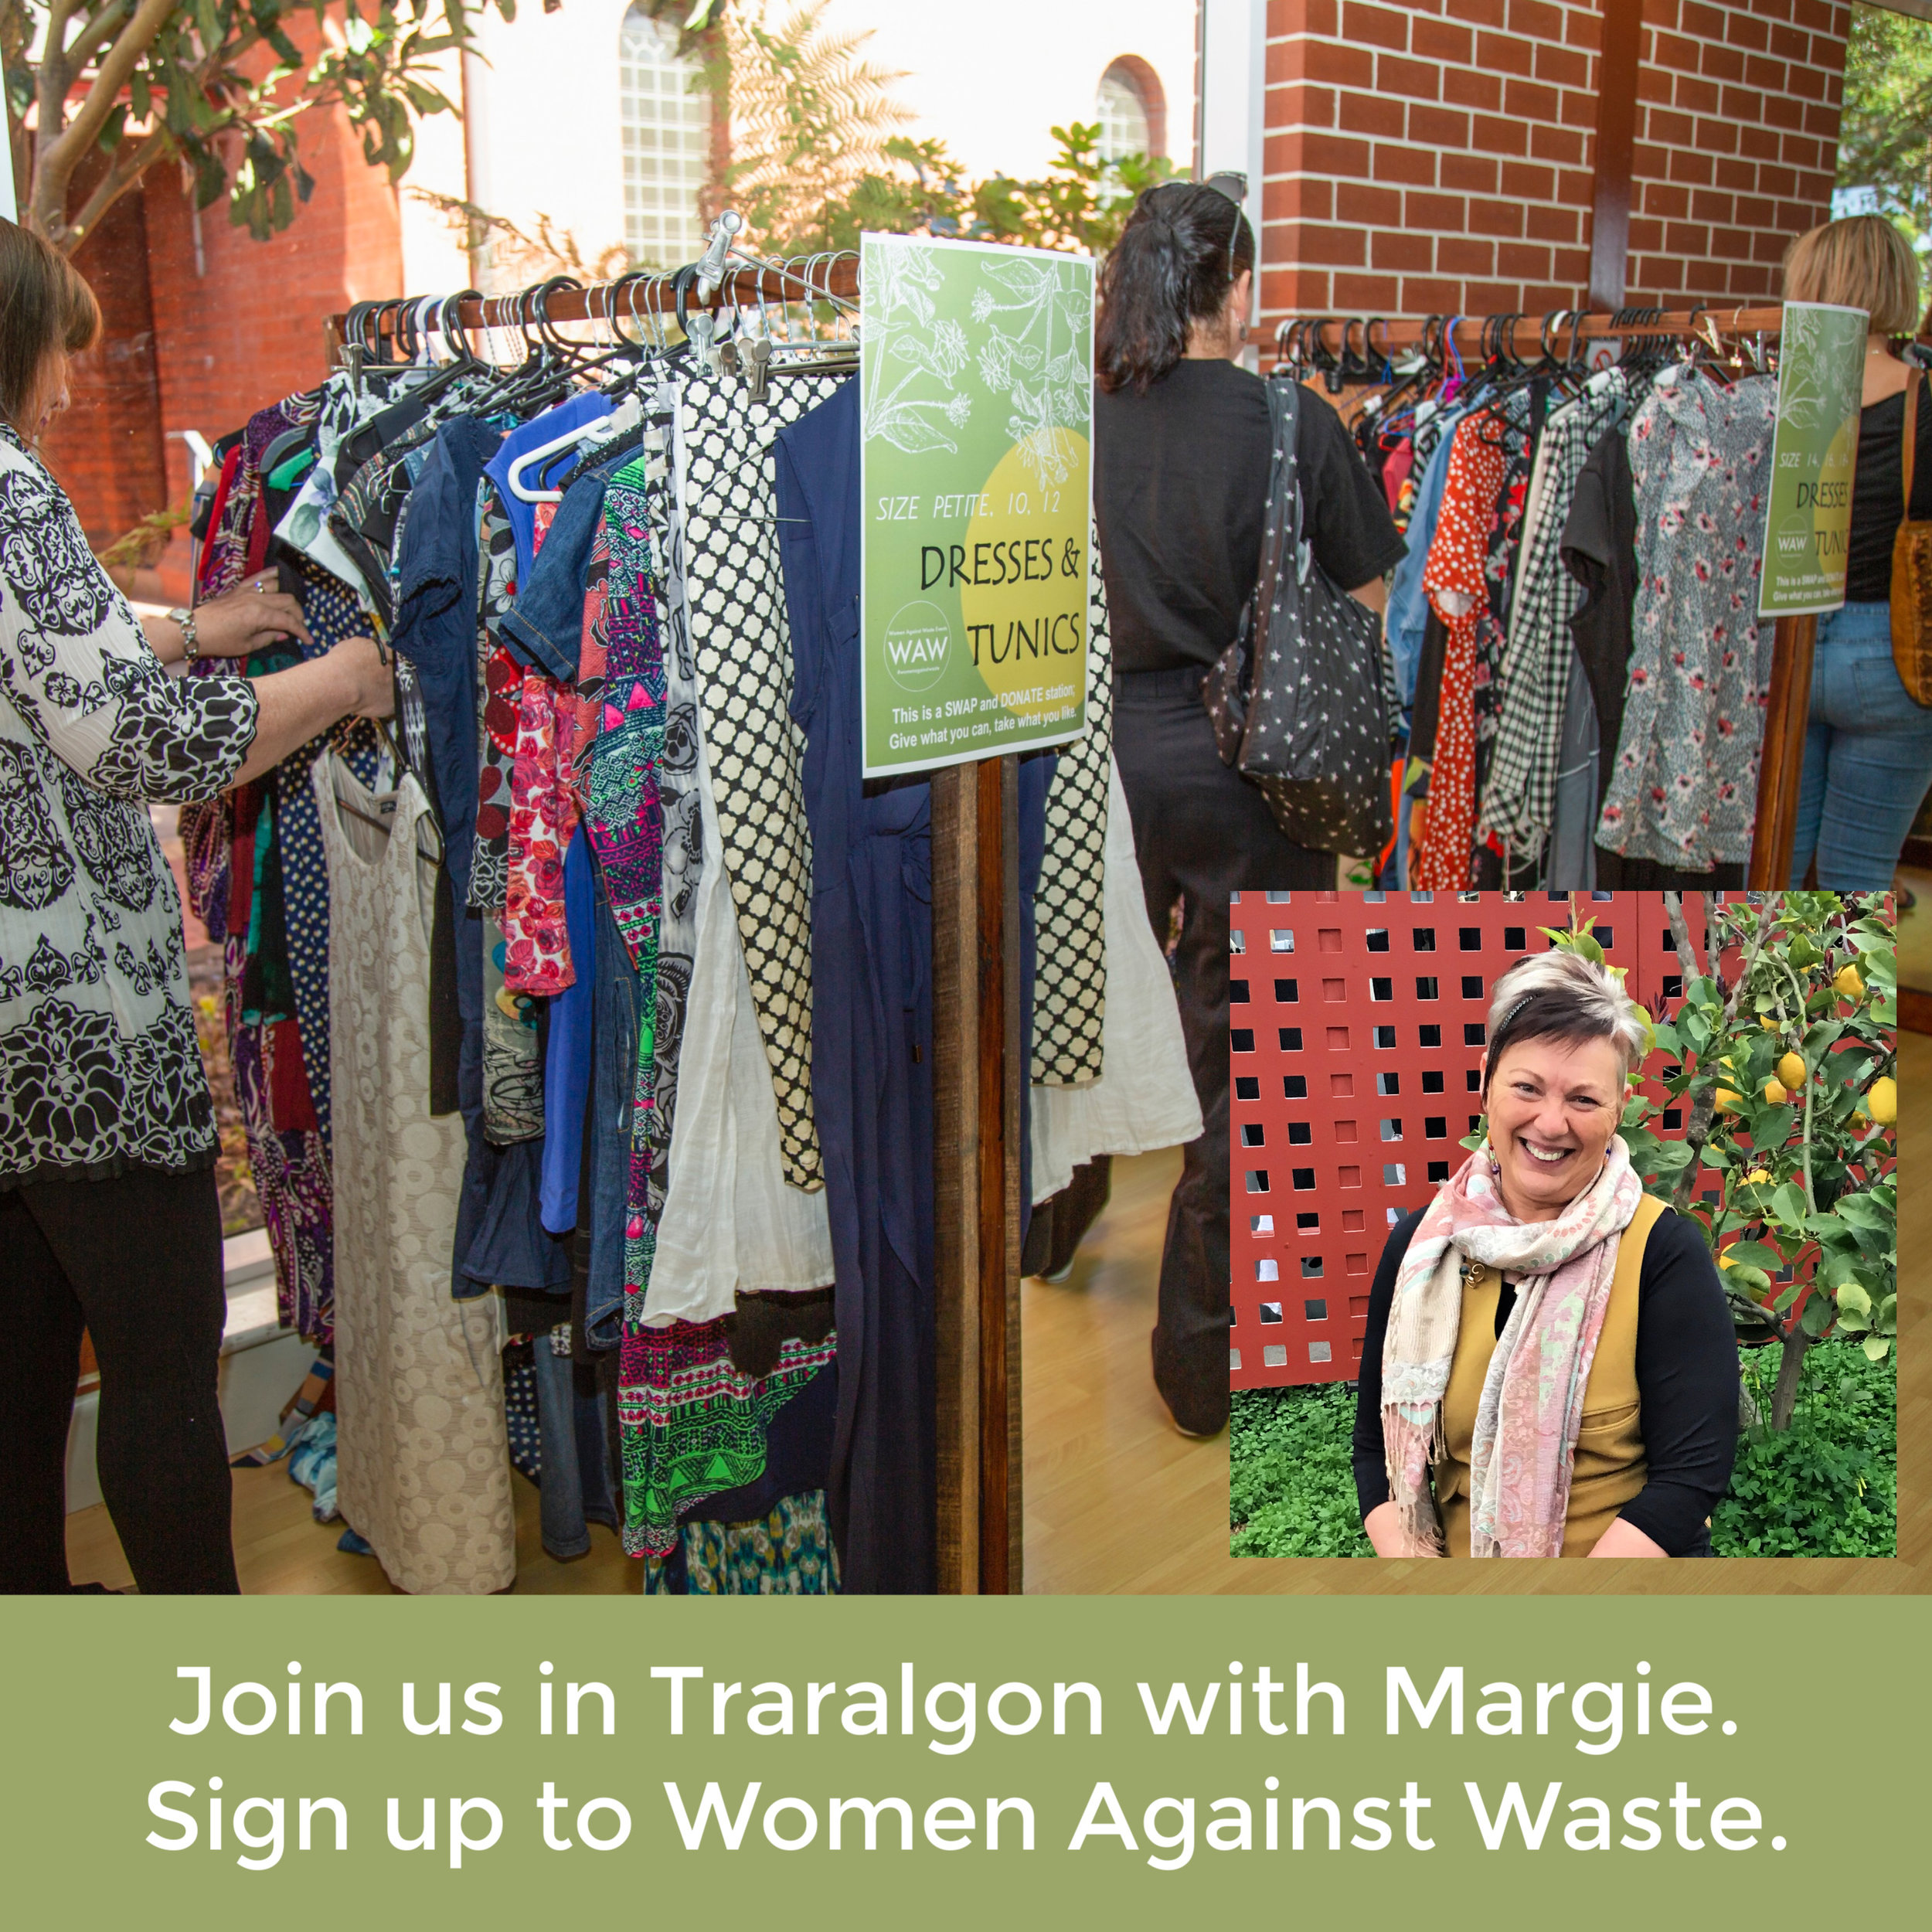 Traralgon WAW event